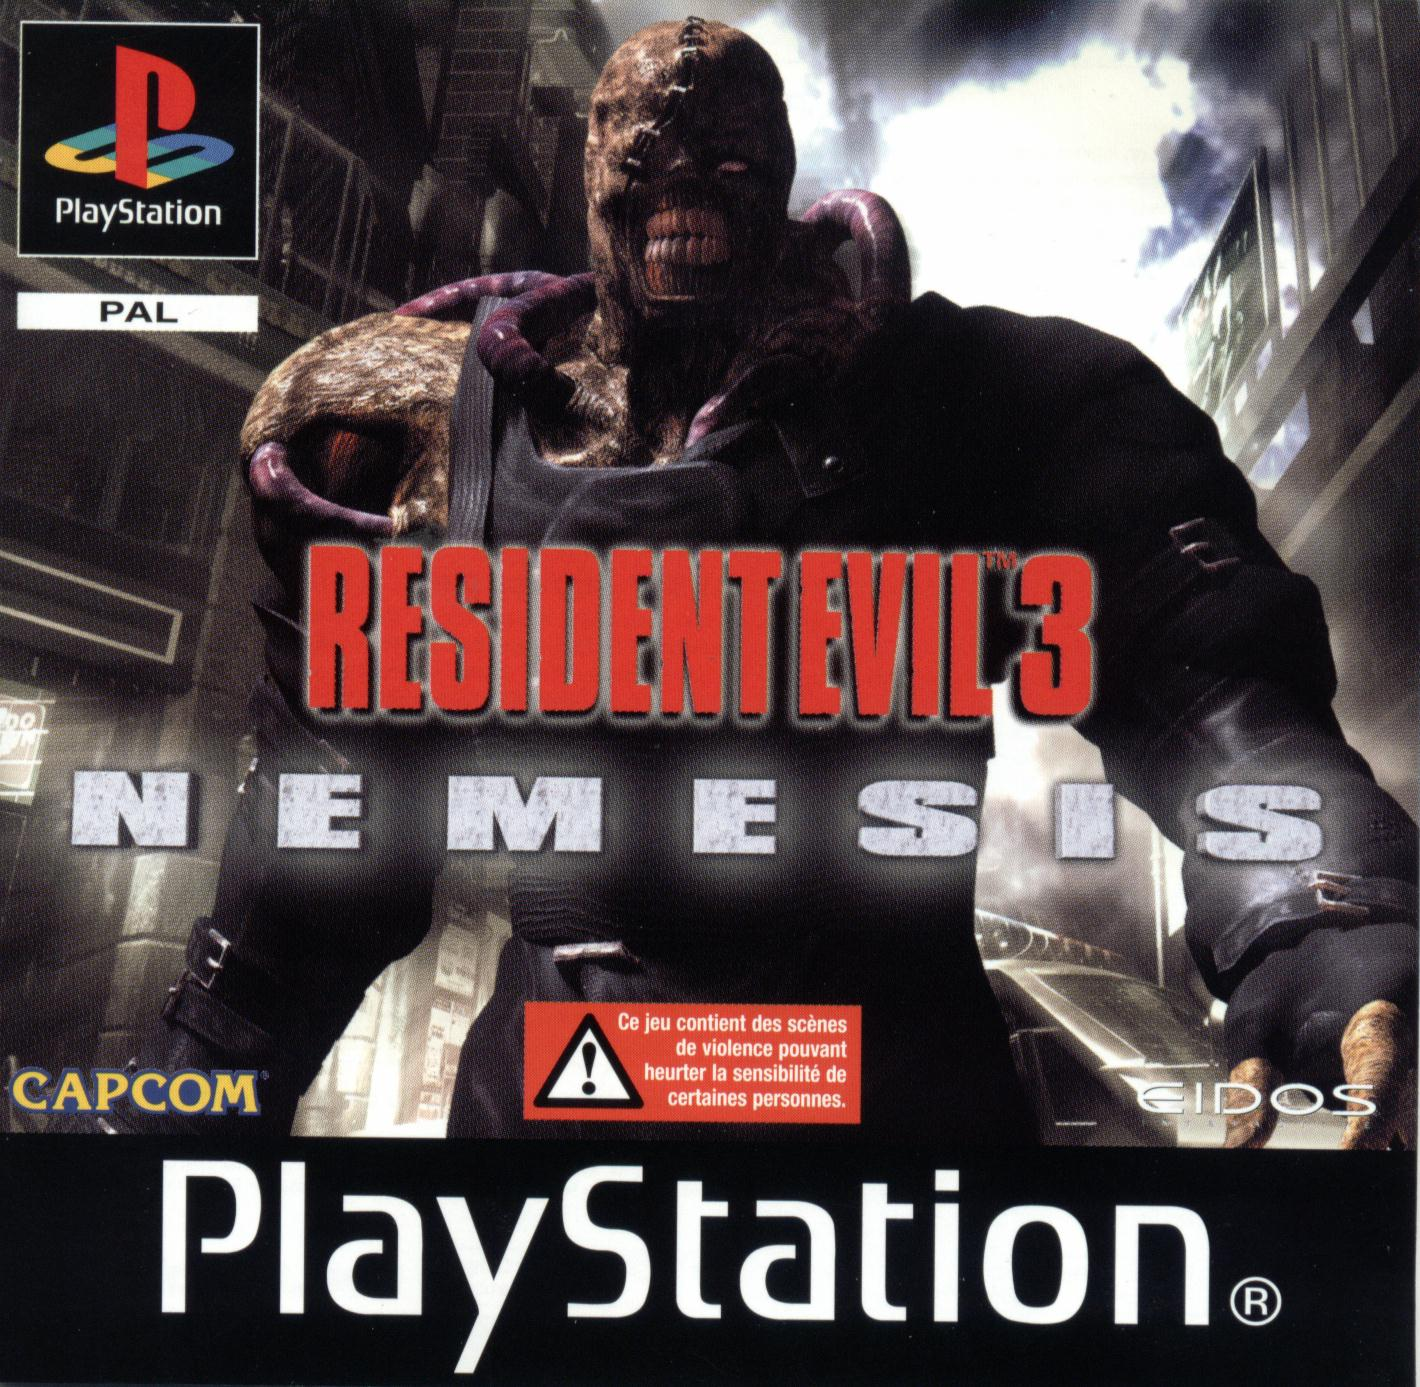 [Coming of Age] Resident Evil 3: Nemesis